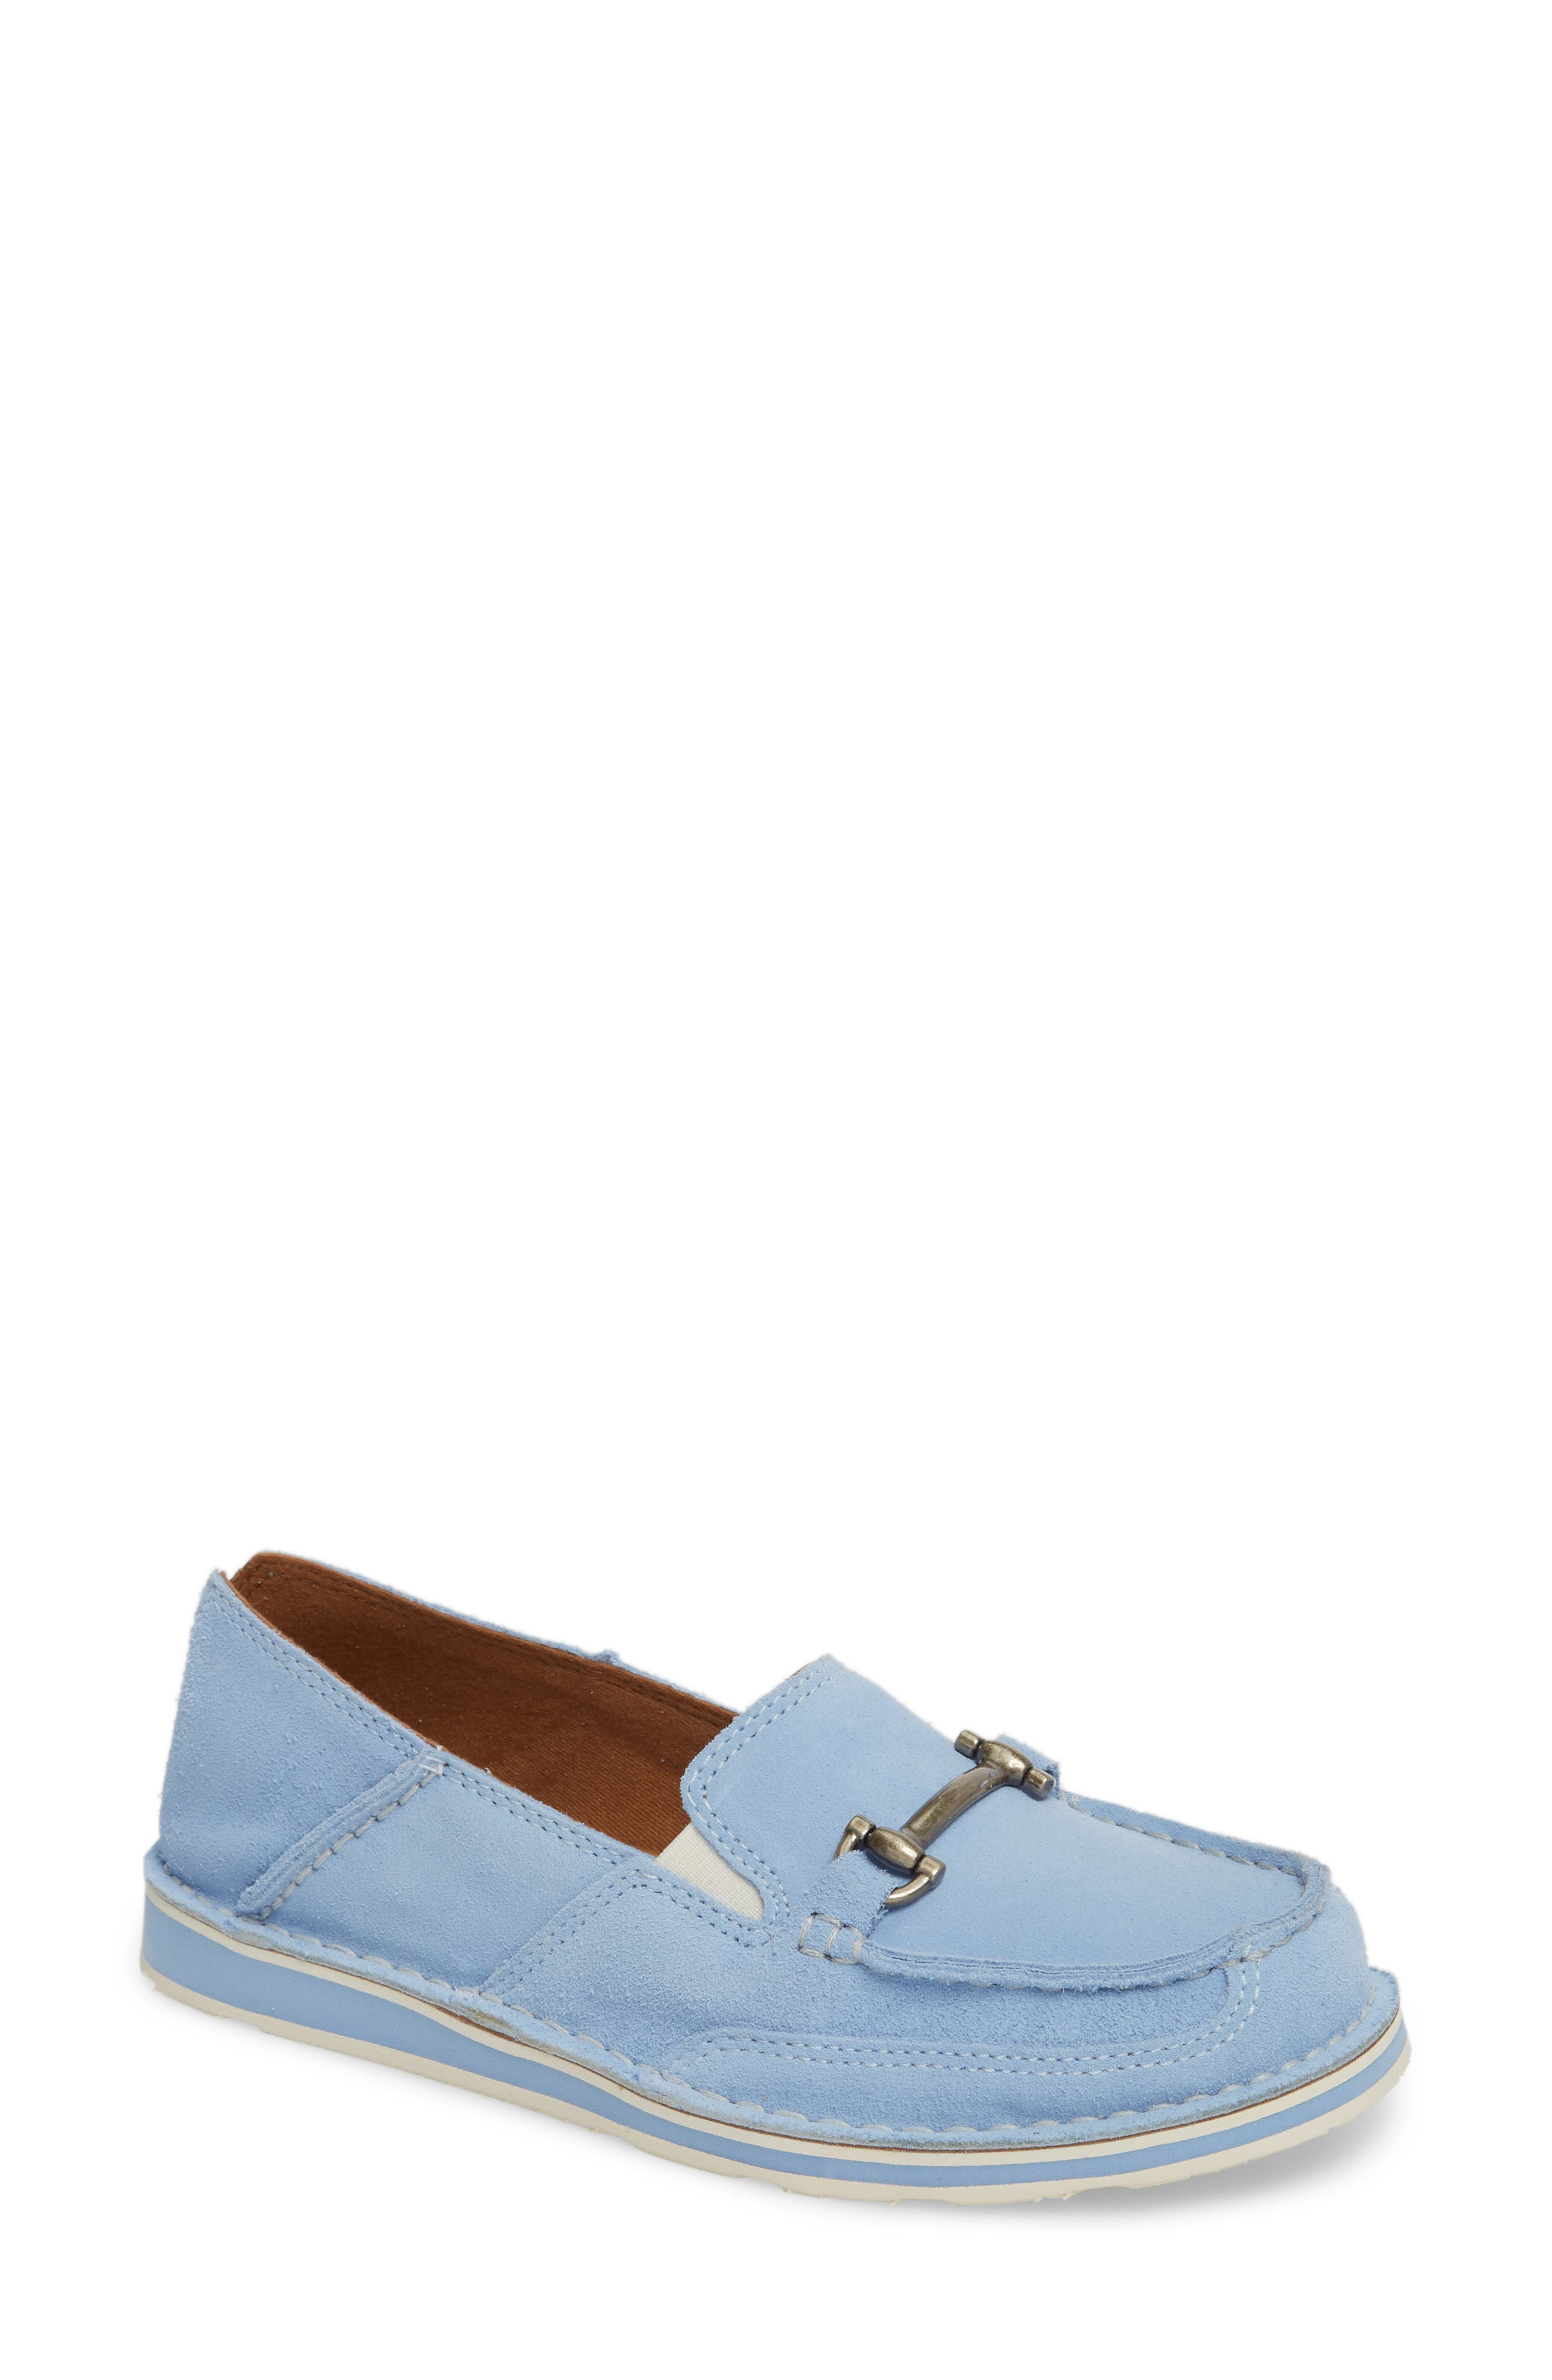 Ariat CRUISER CASTAWAY LOAFER